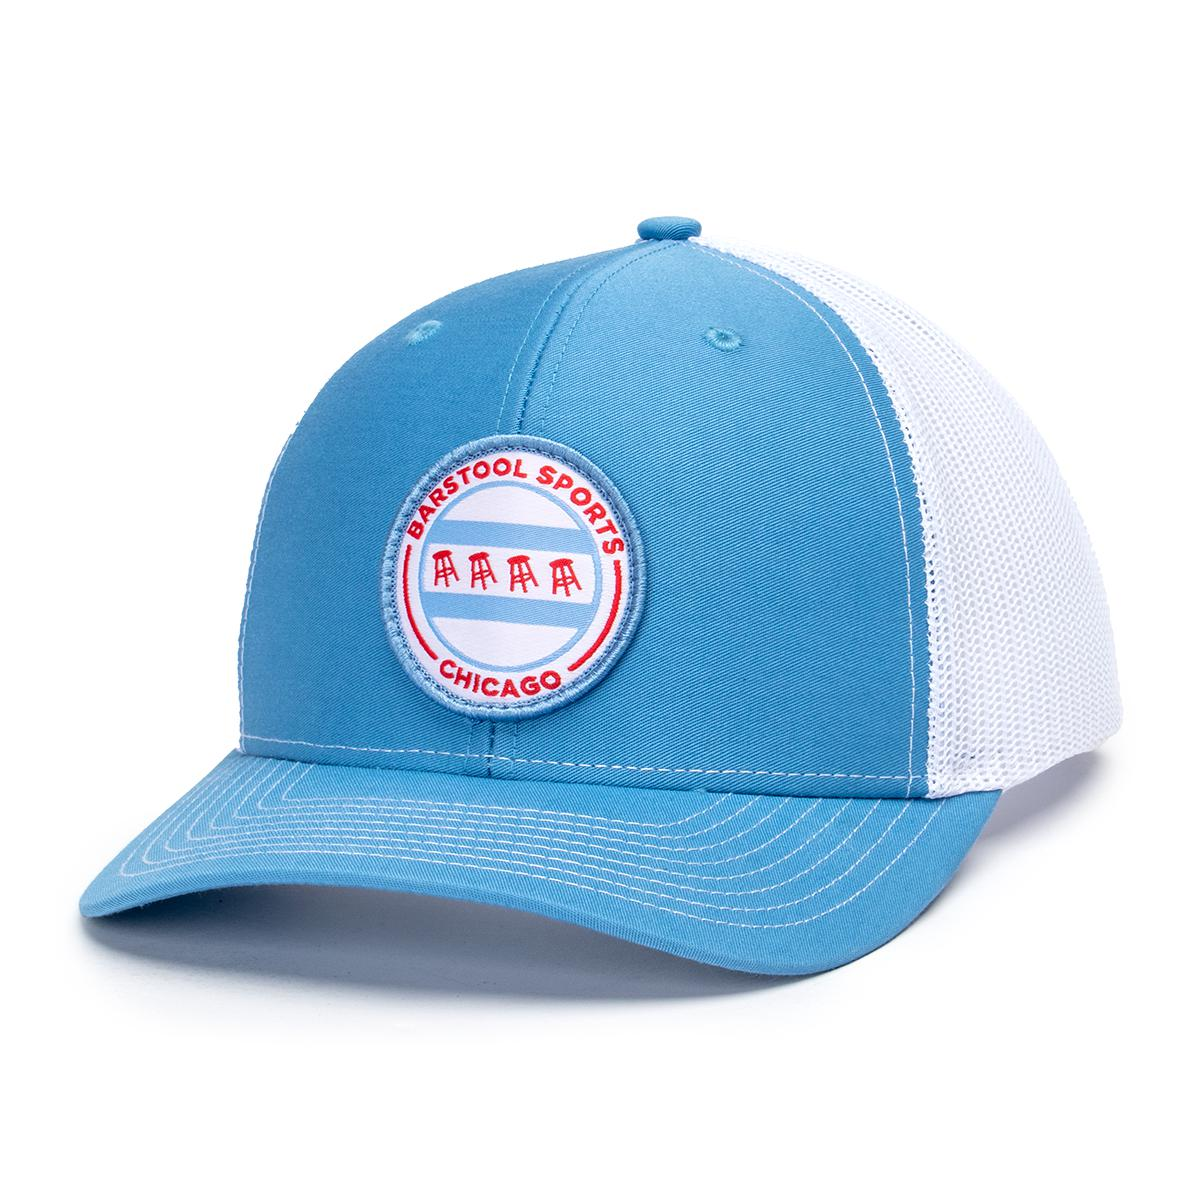 Barstool Sports CHI Patch Hat